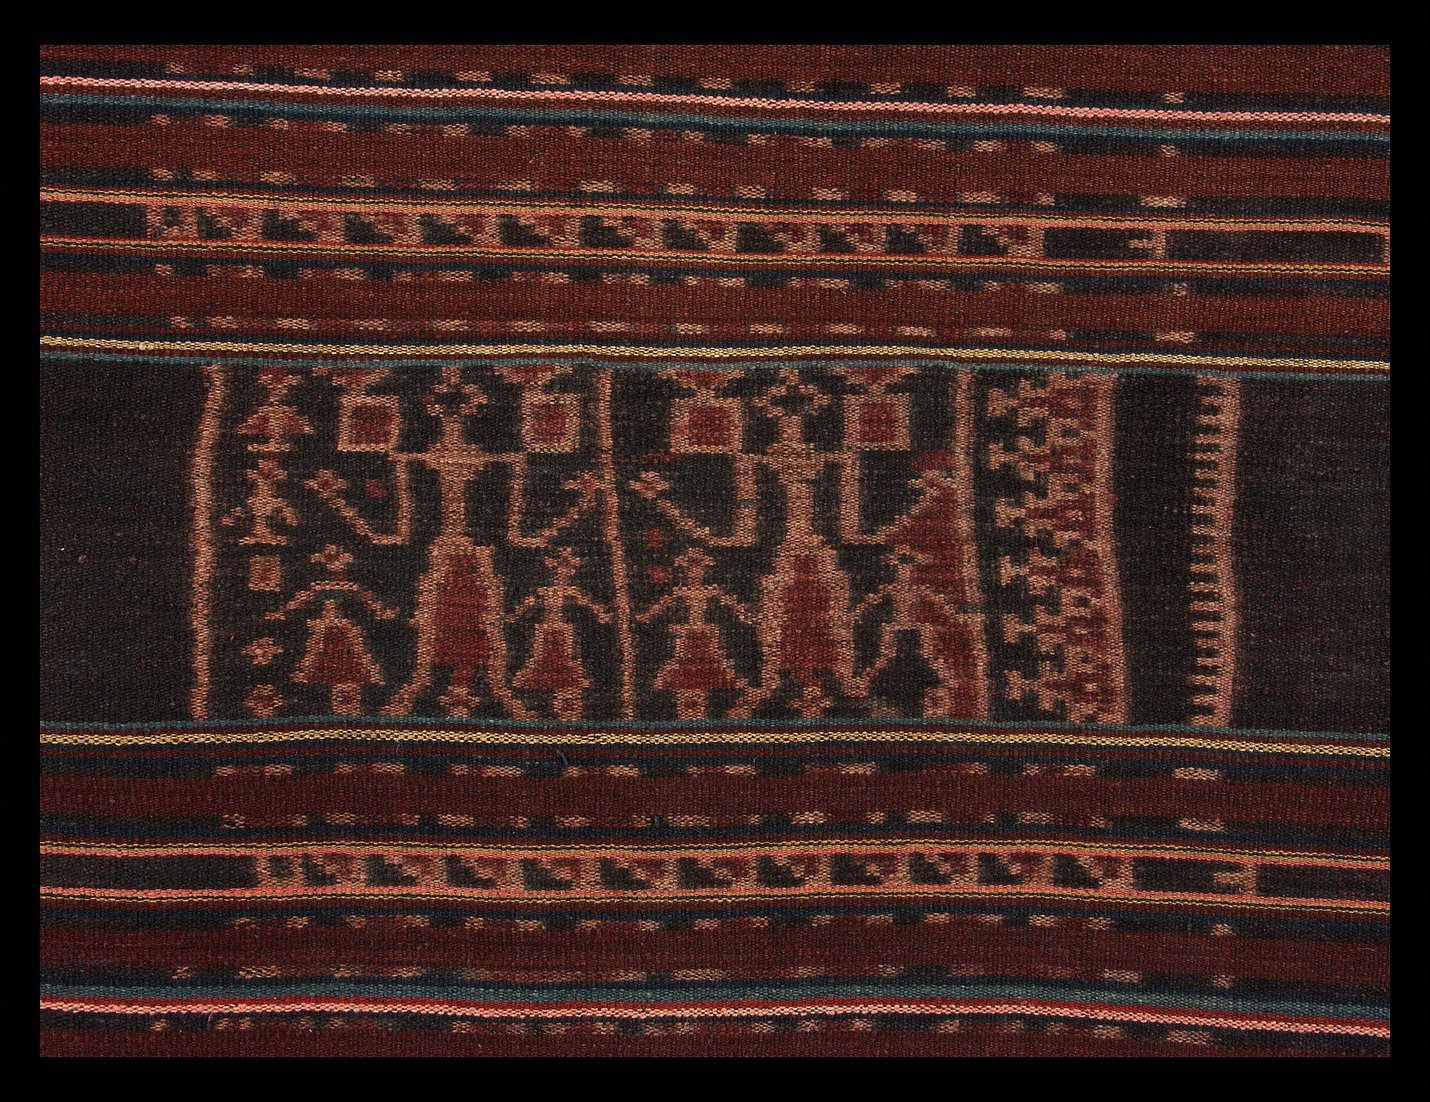 Details of 19th century sarong with double headed eagles.  Made with handspun cotton, Kisar, Indonesia  138 x 118   Samyama  Collection.